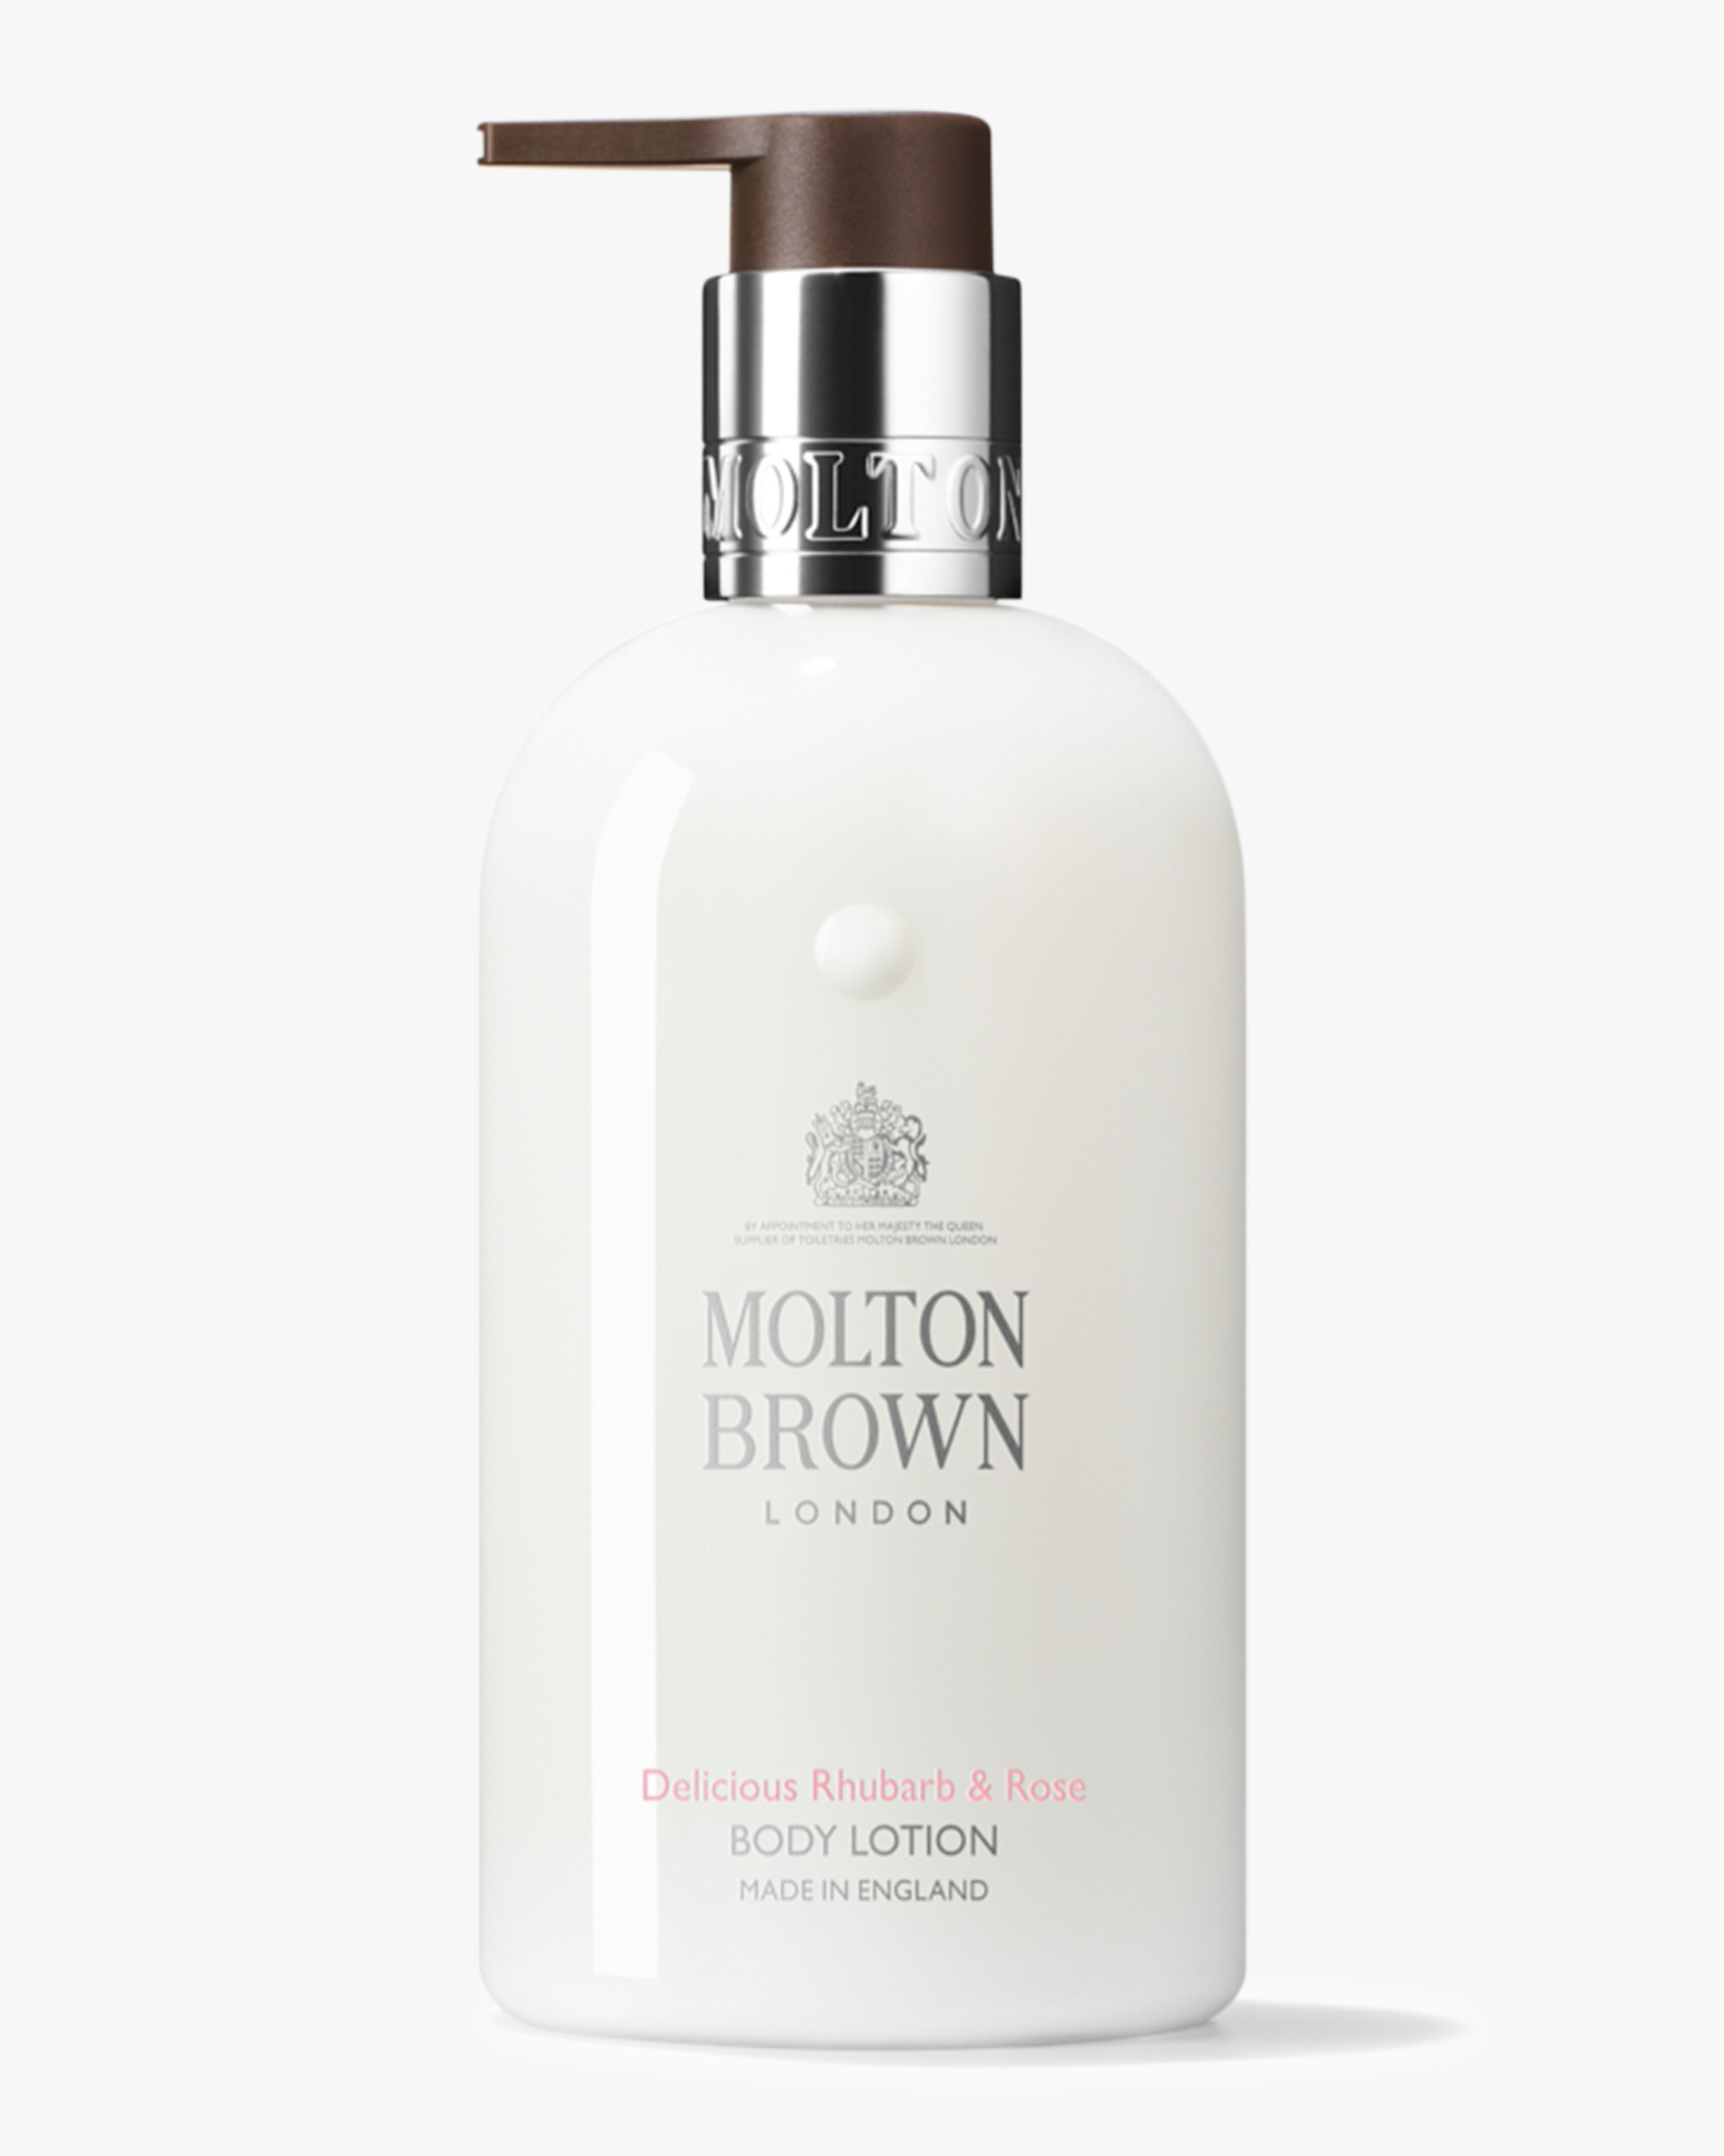 Molton Brown Delicious Rhubarb & Rose Body Lotion 300ml 2